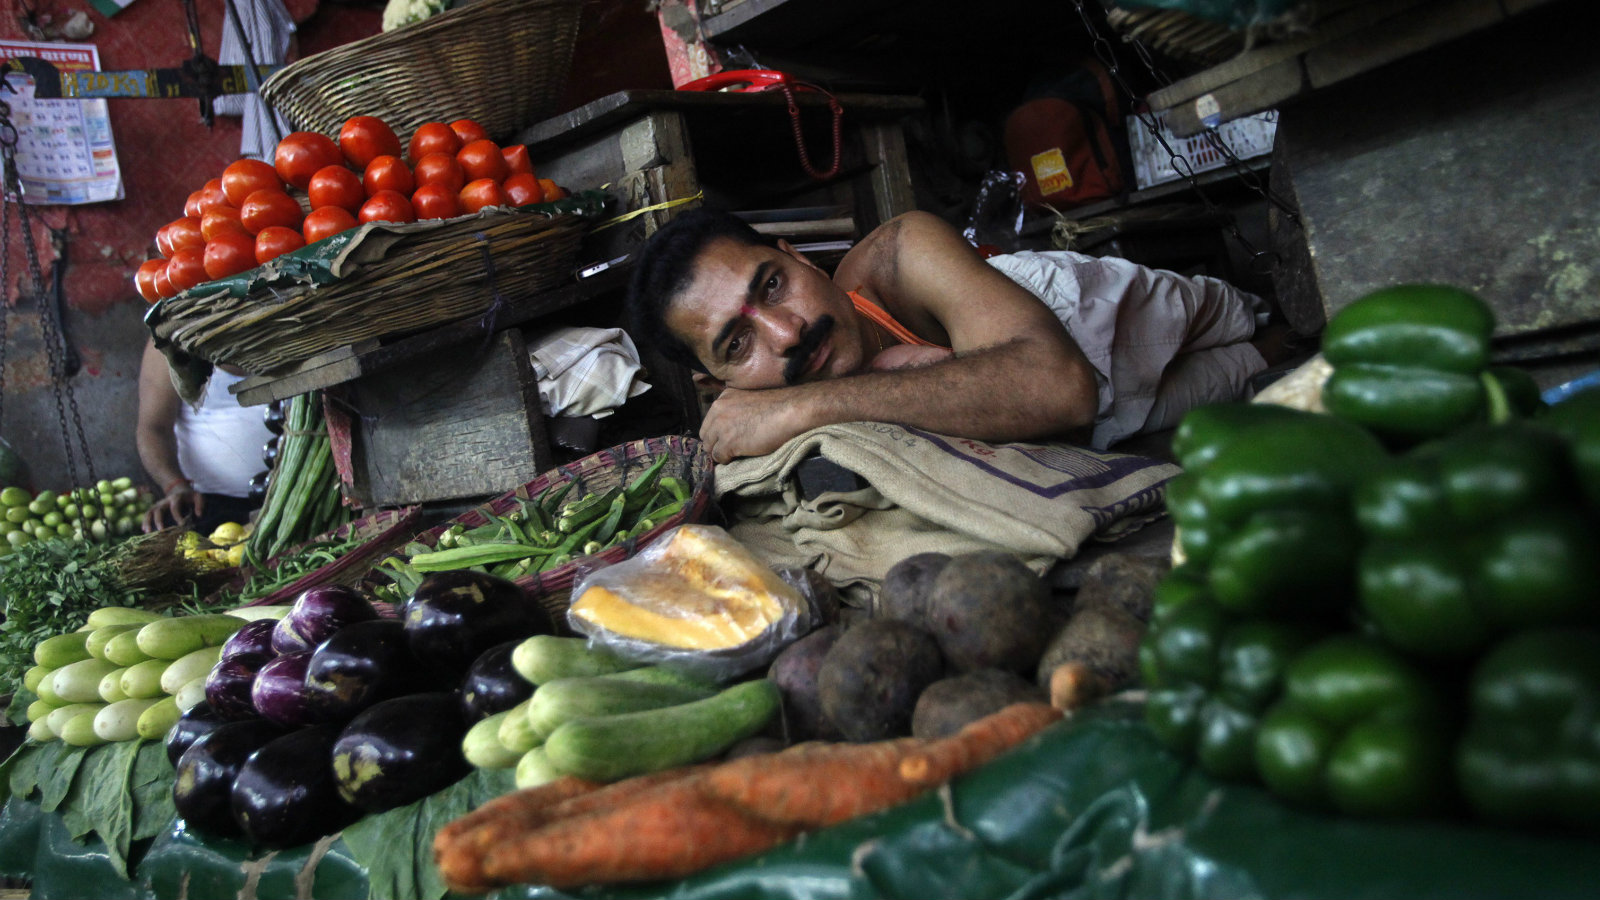 A vegetable vendor in Mumbai rests as he awaits customers.